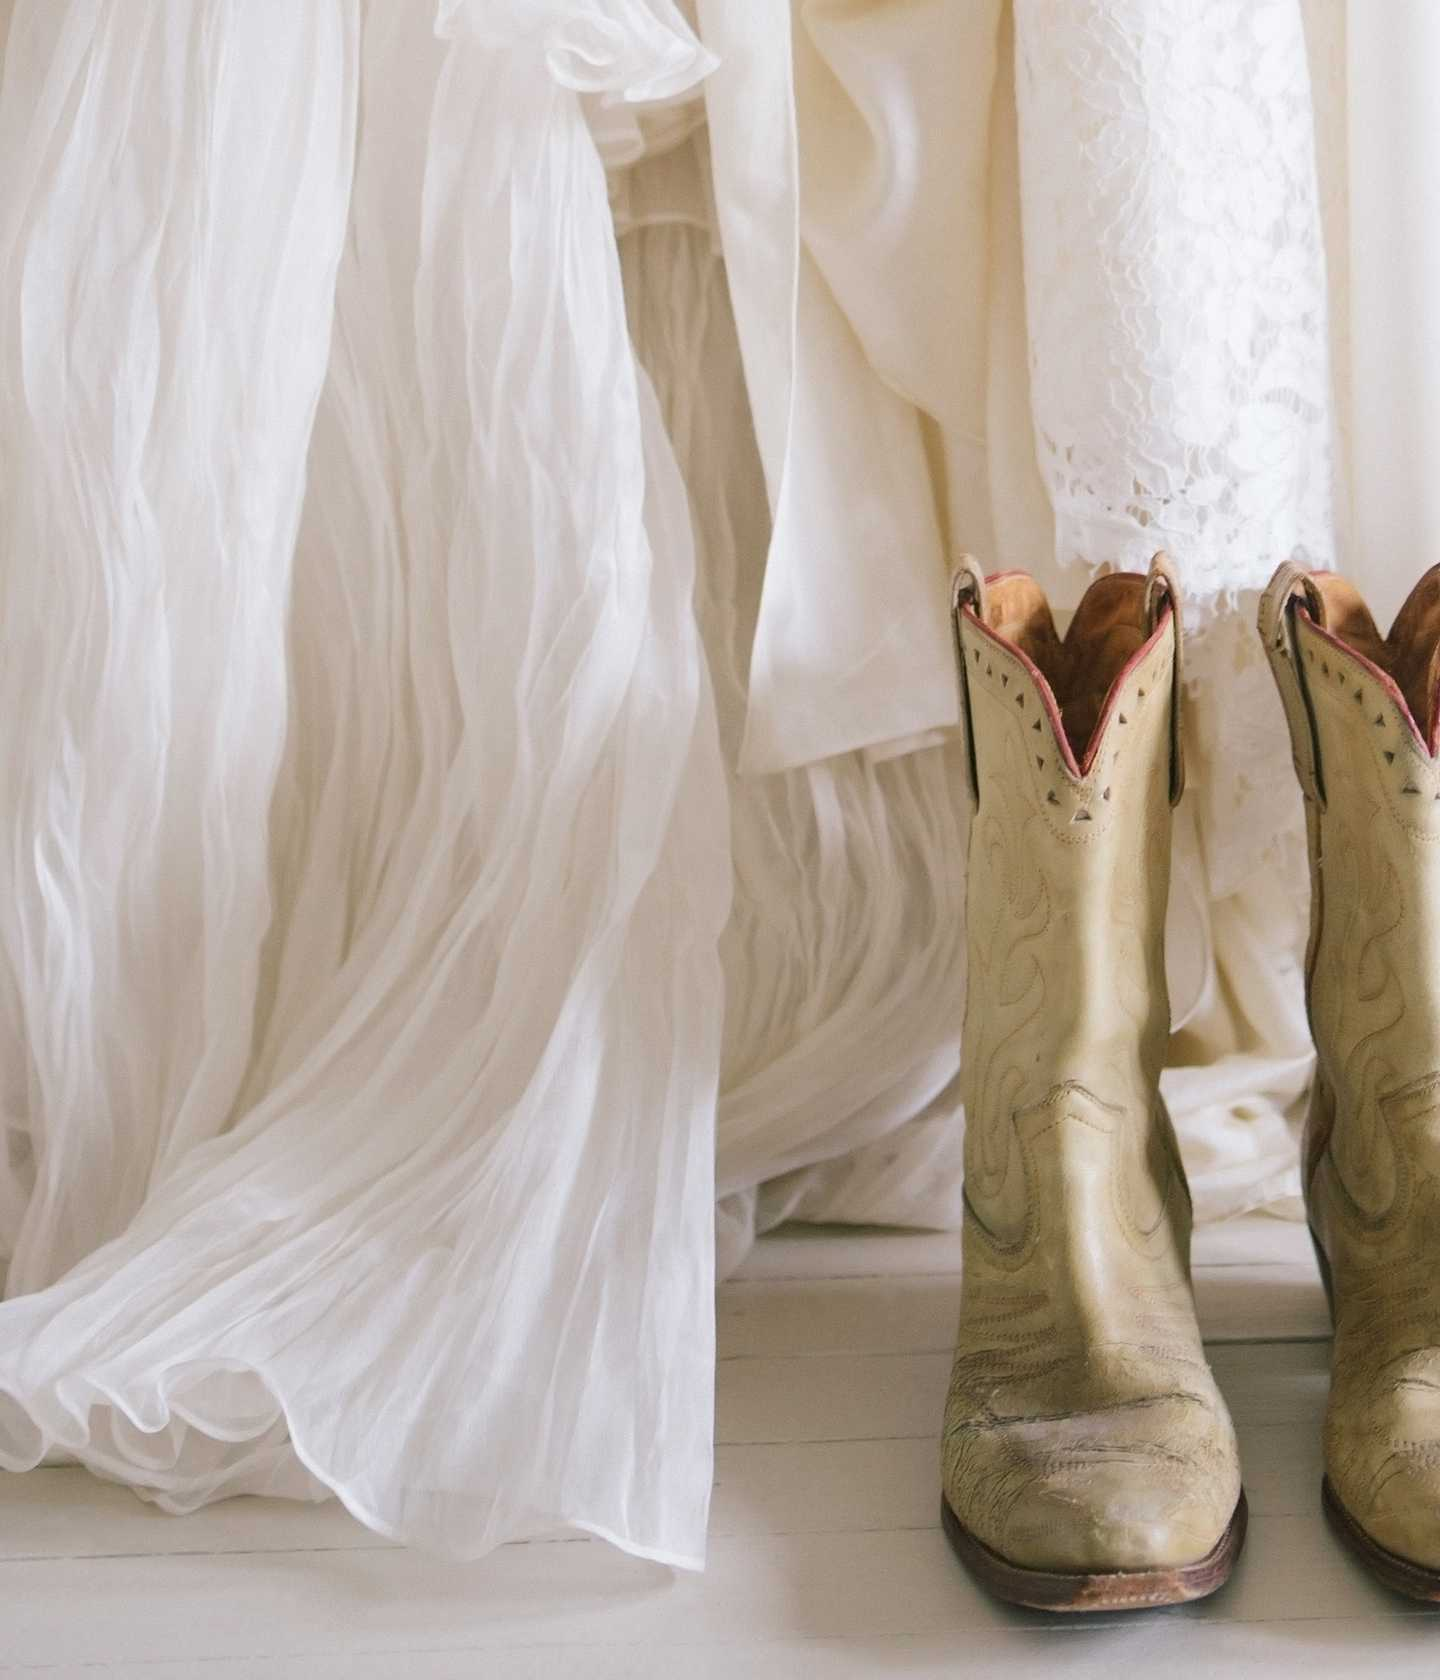 The hems of several white dresses and a pair of cowboy boots